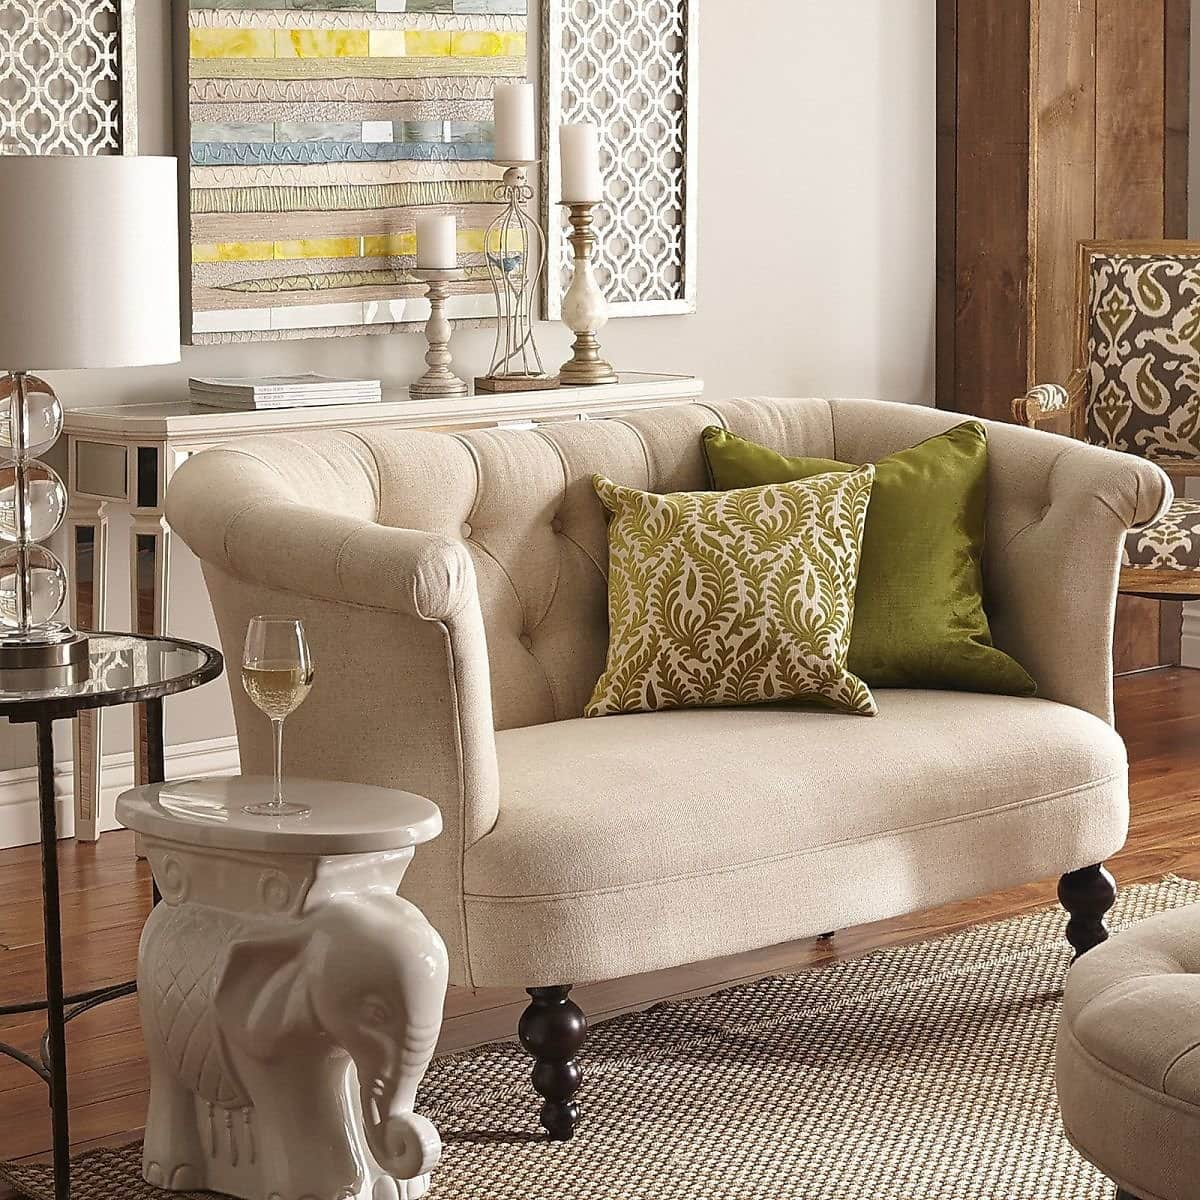 Colette Collection Flax Beige Loveseat $649.99 + fs